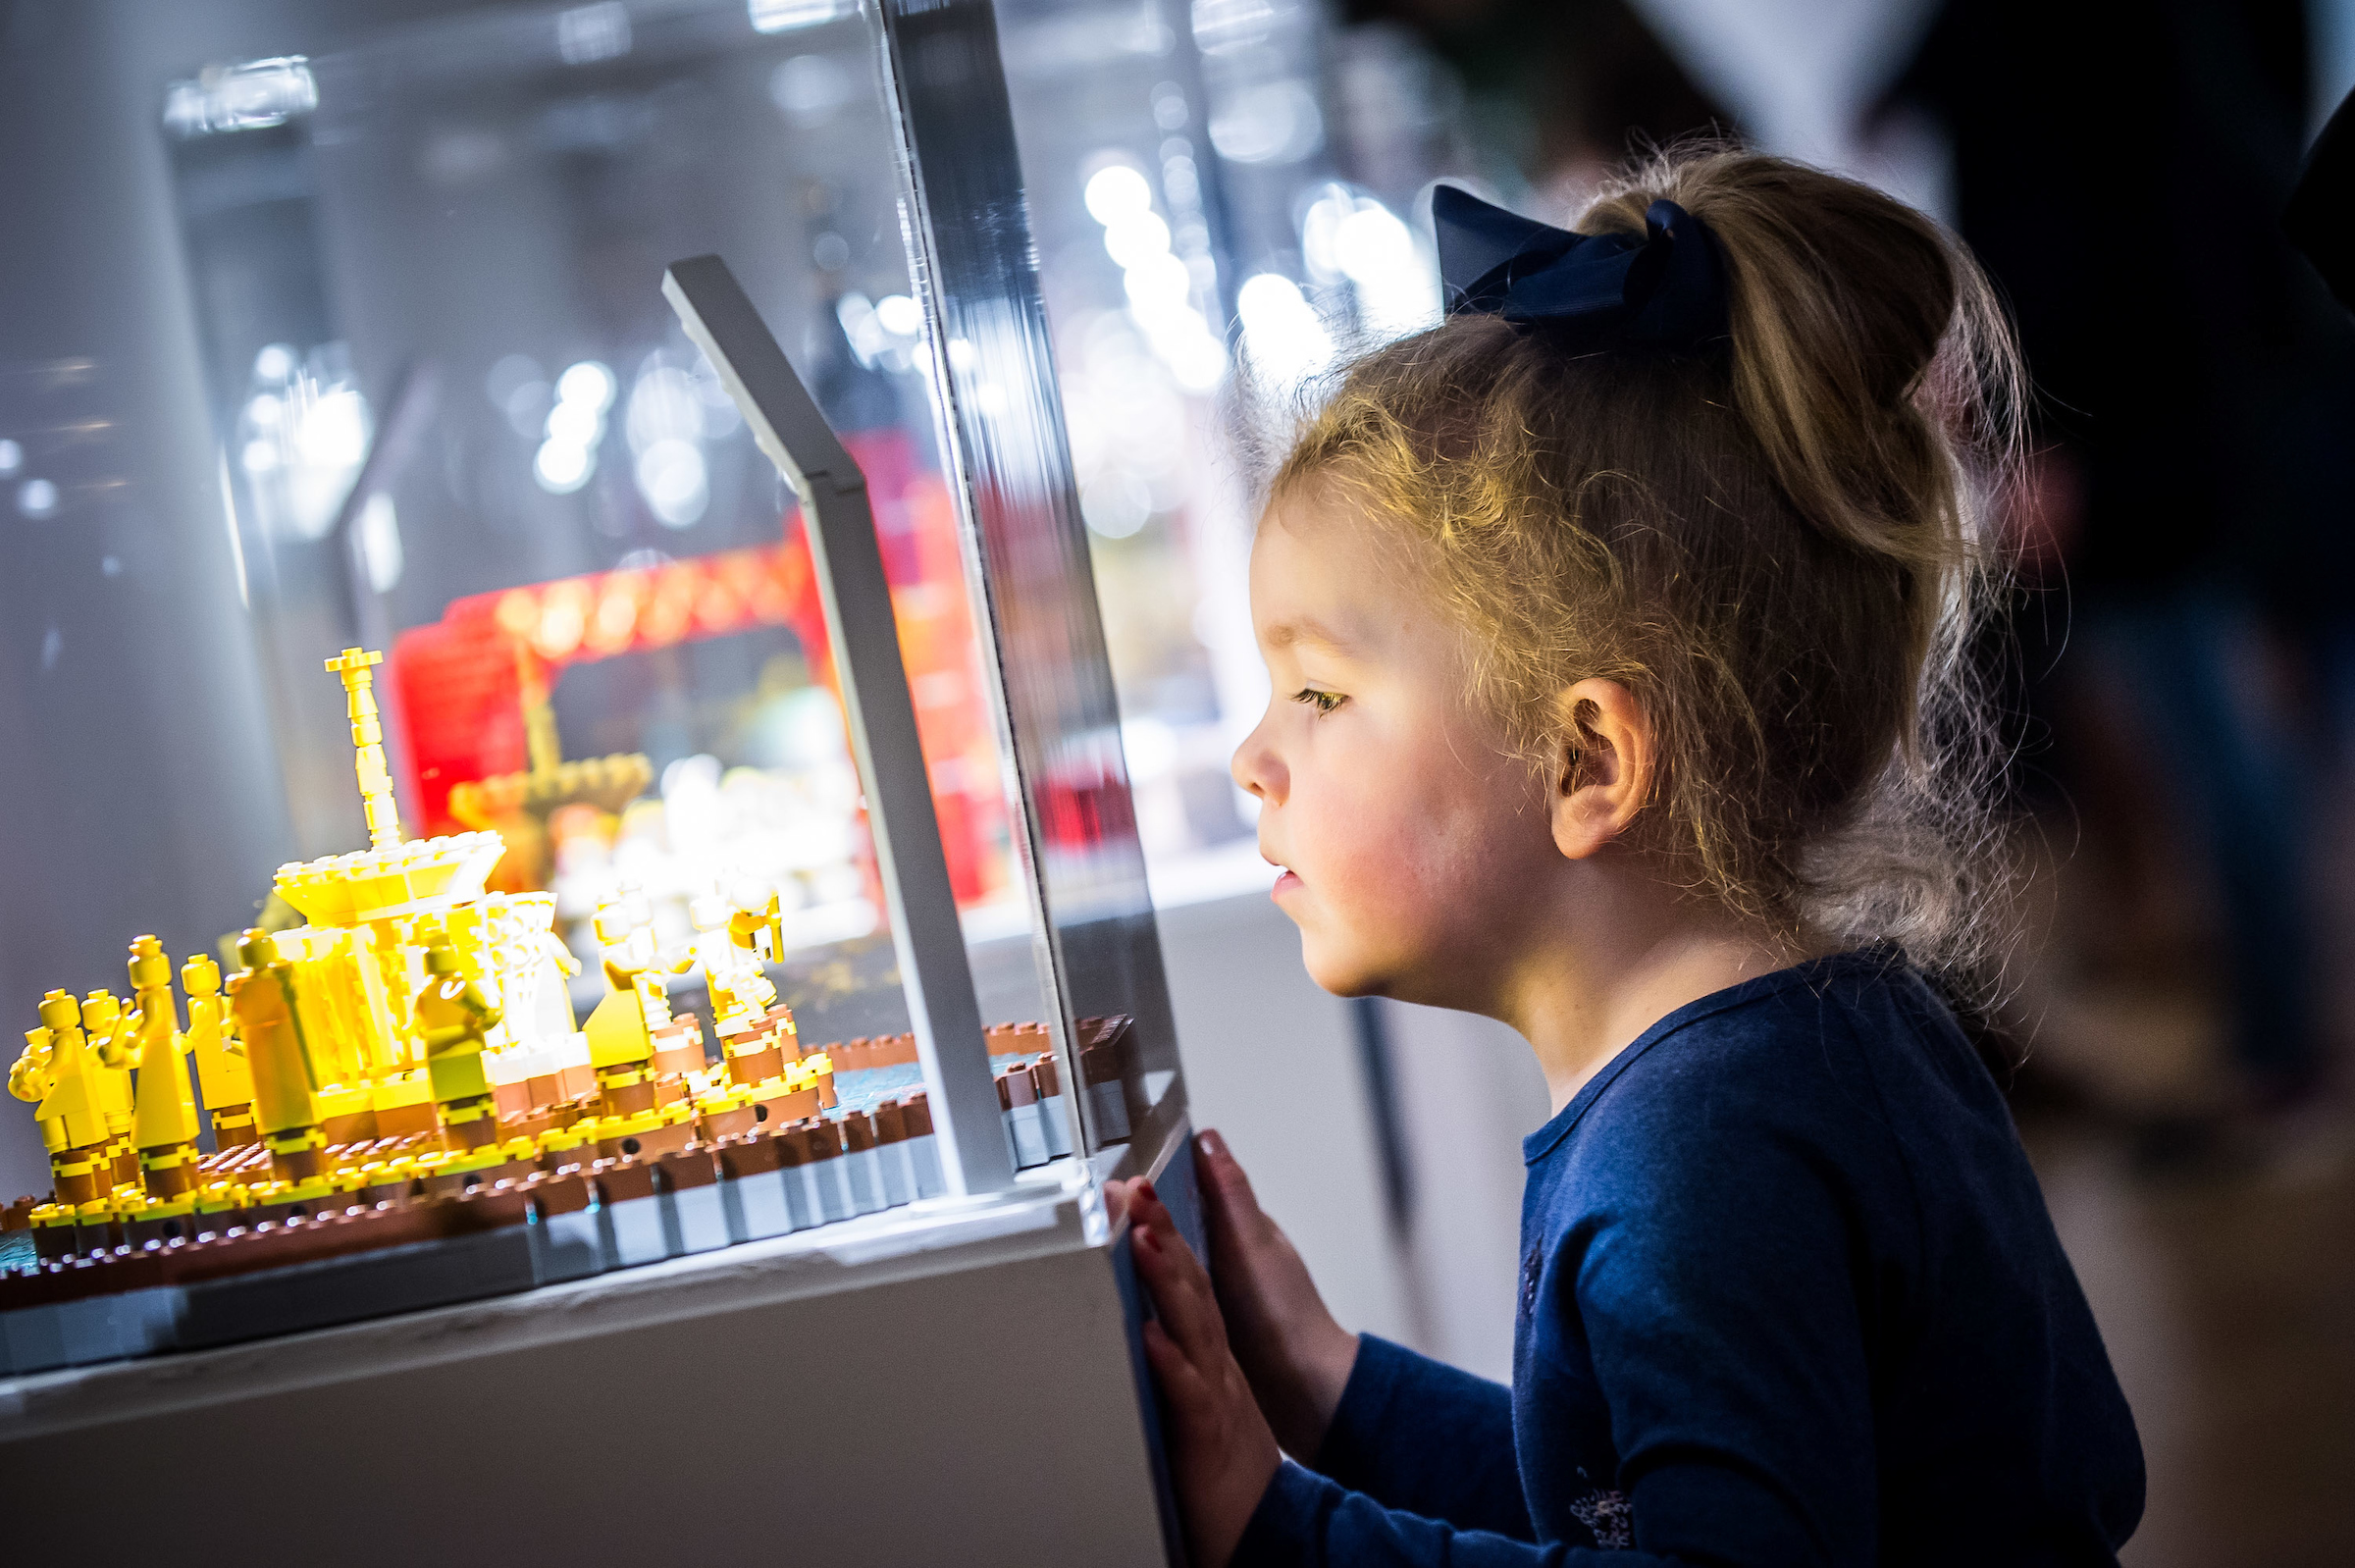 Lyla Pedgrift, 3, from Kinfauns enjoys the Brick City exhibition at Perth Museum and Art Gallery.